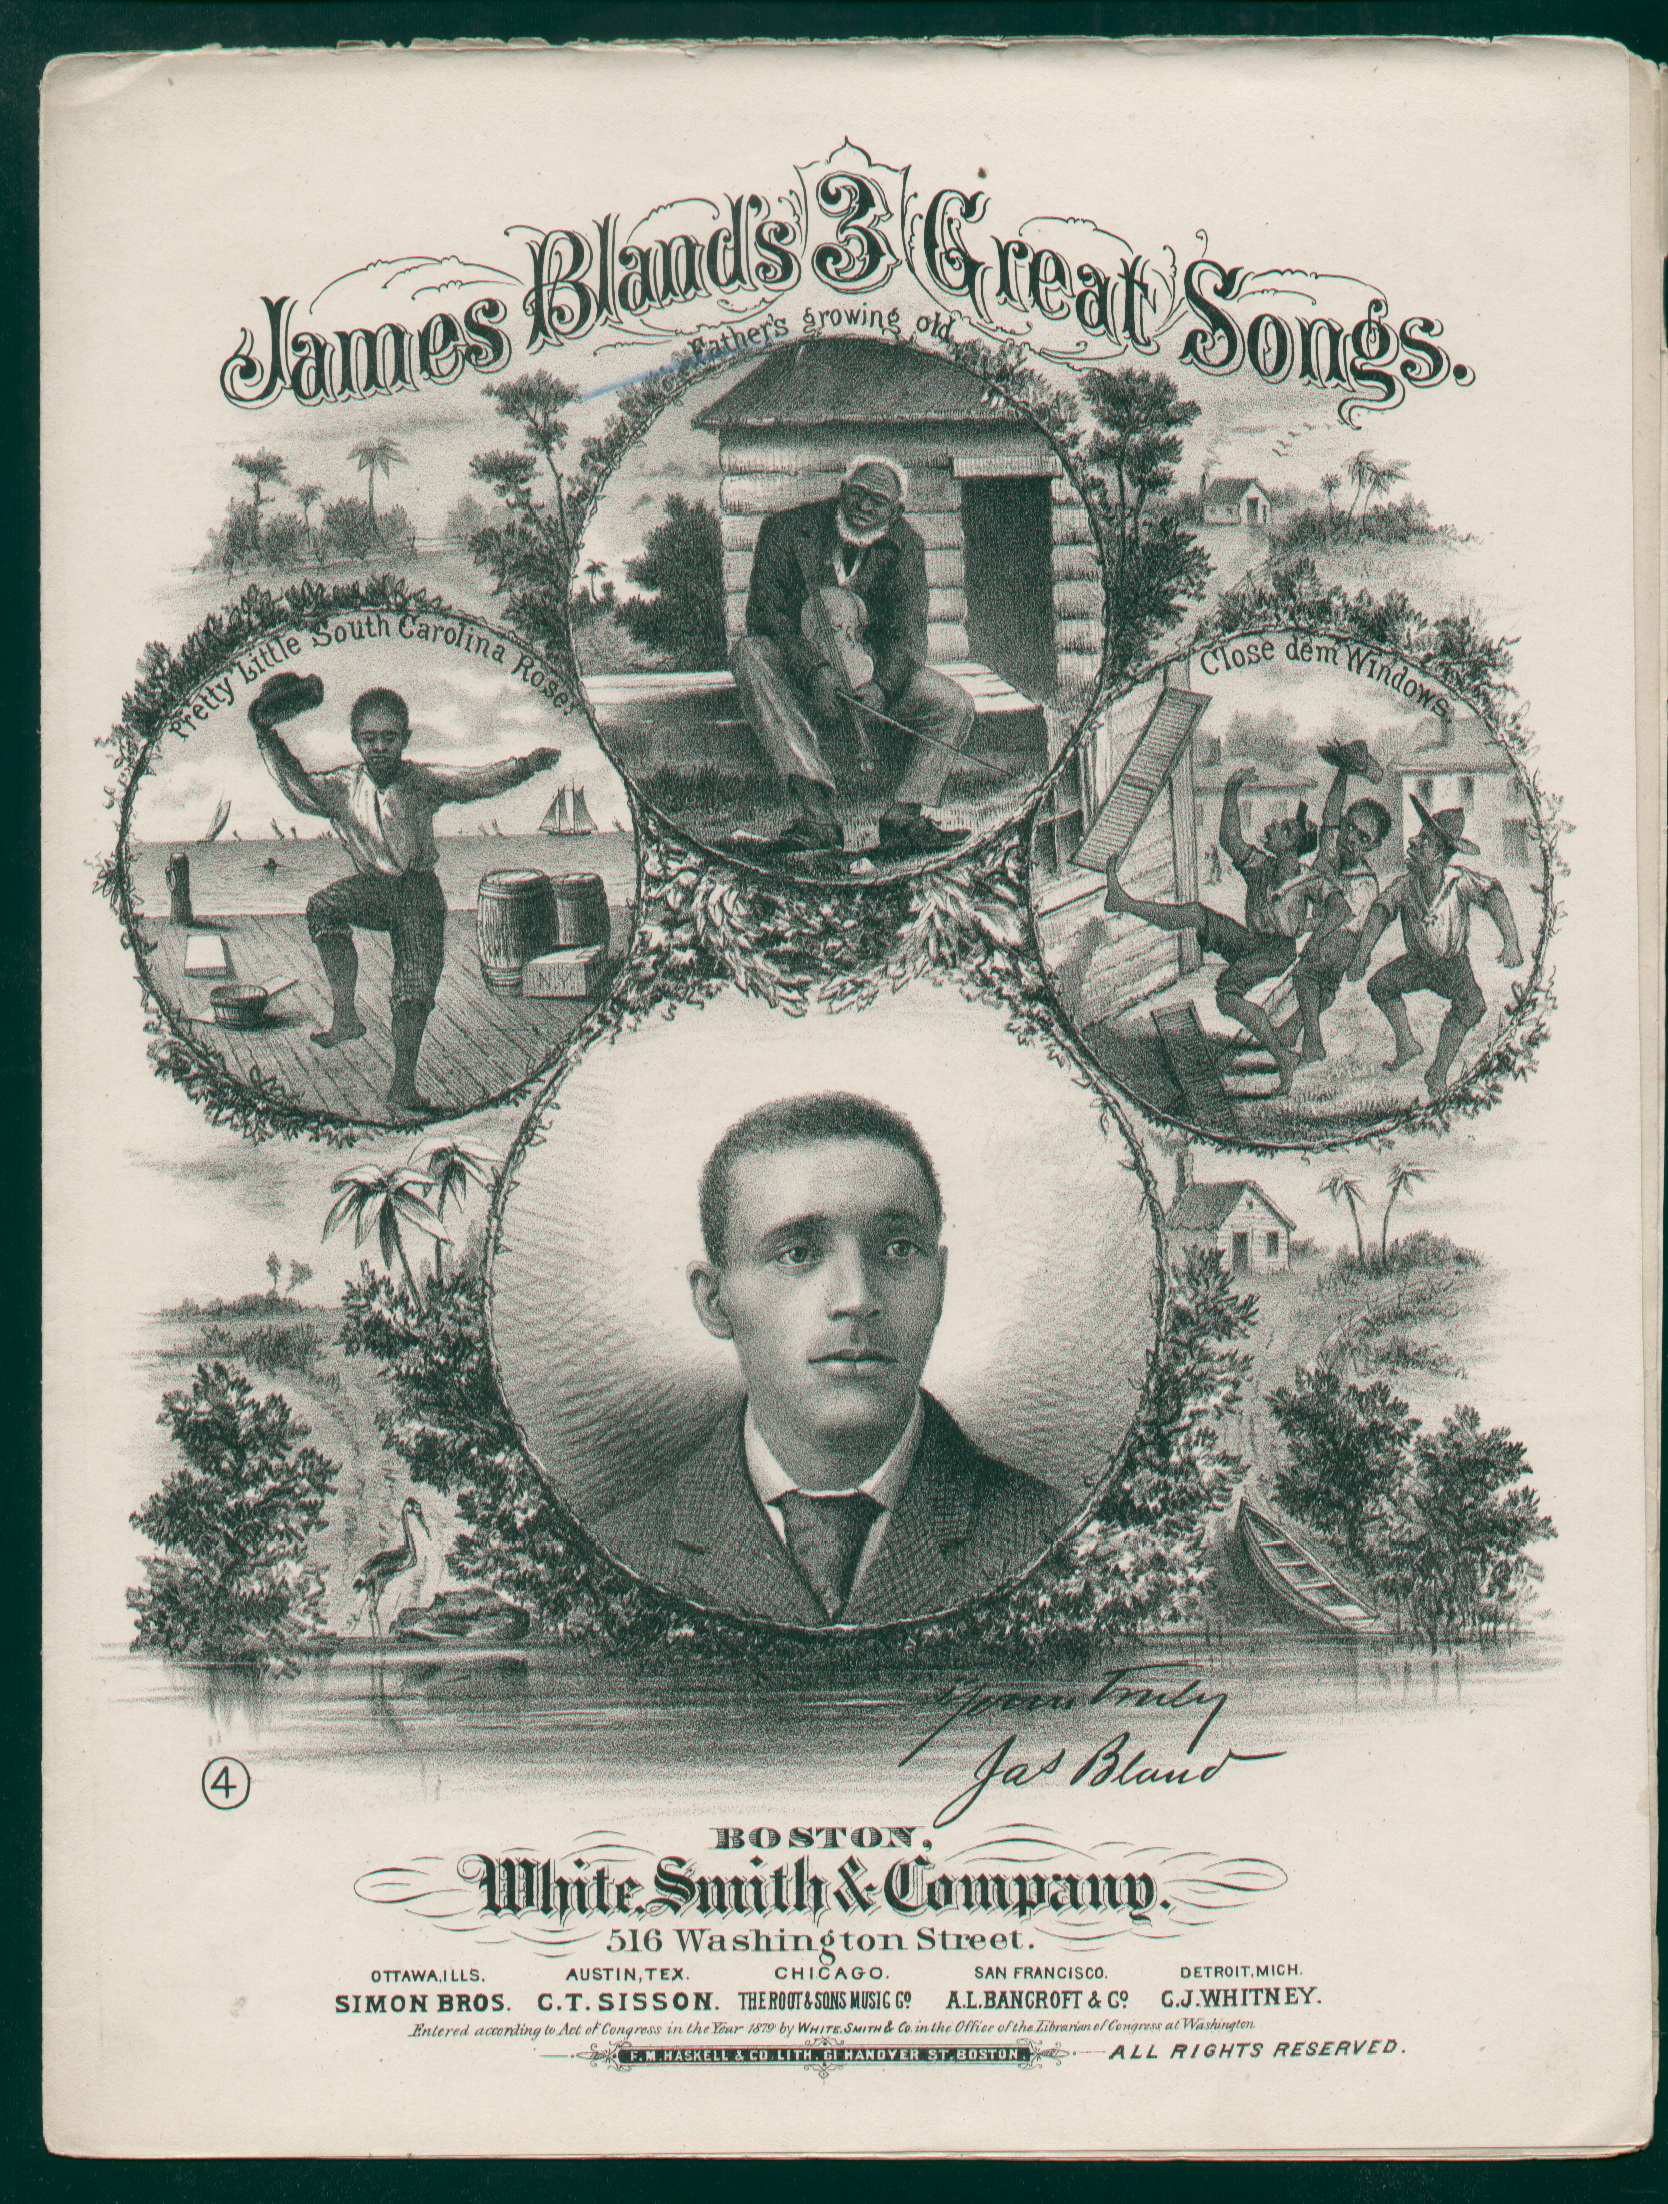 1879 James Blands 3 Great Songs